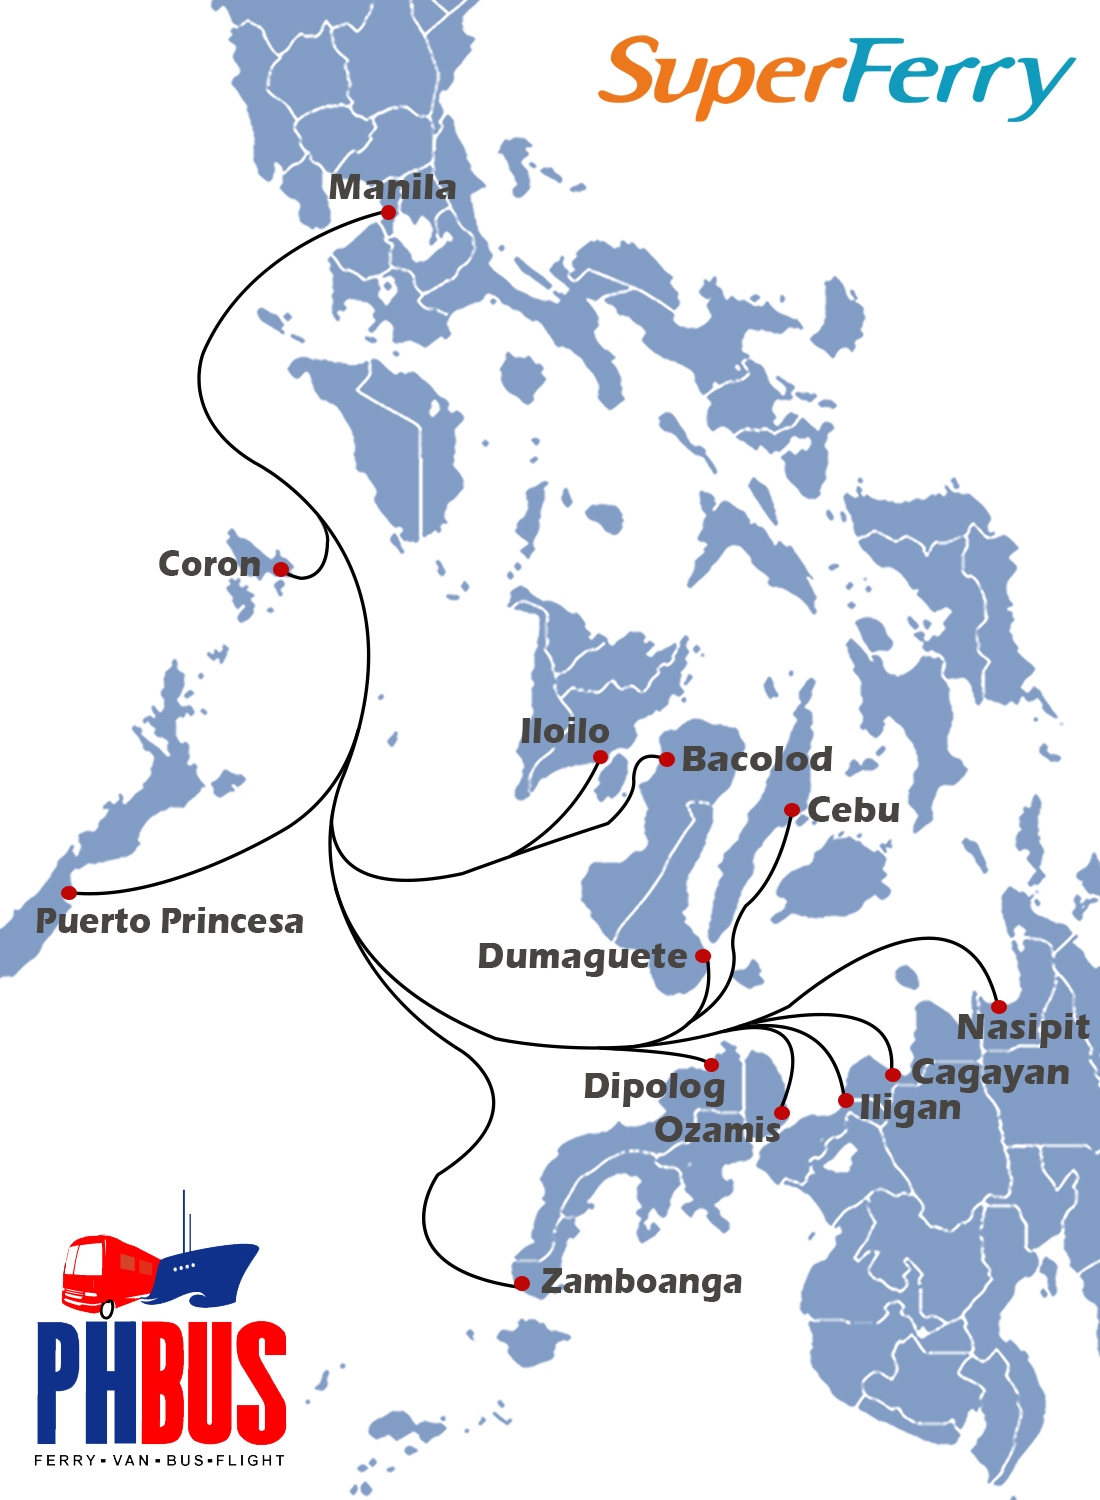 superferry-ferryroute-map-phbus.jpg